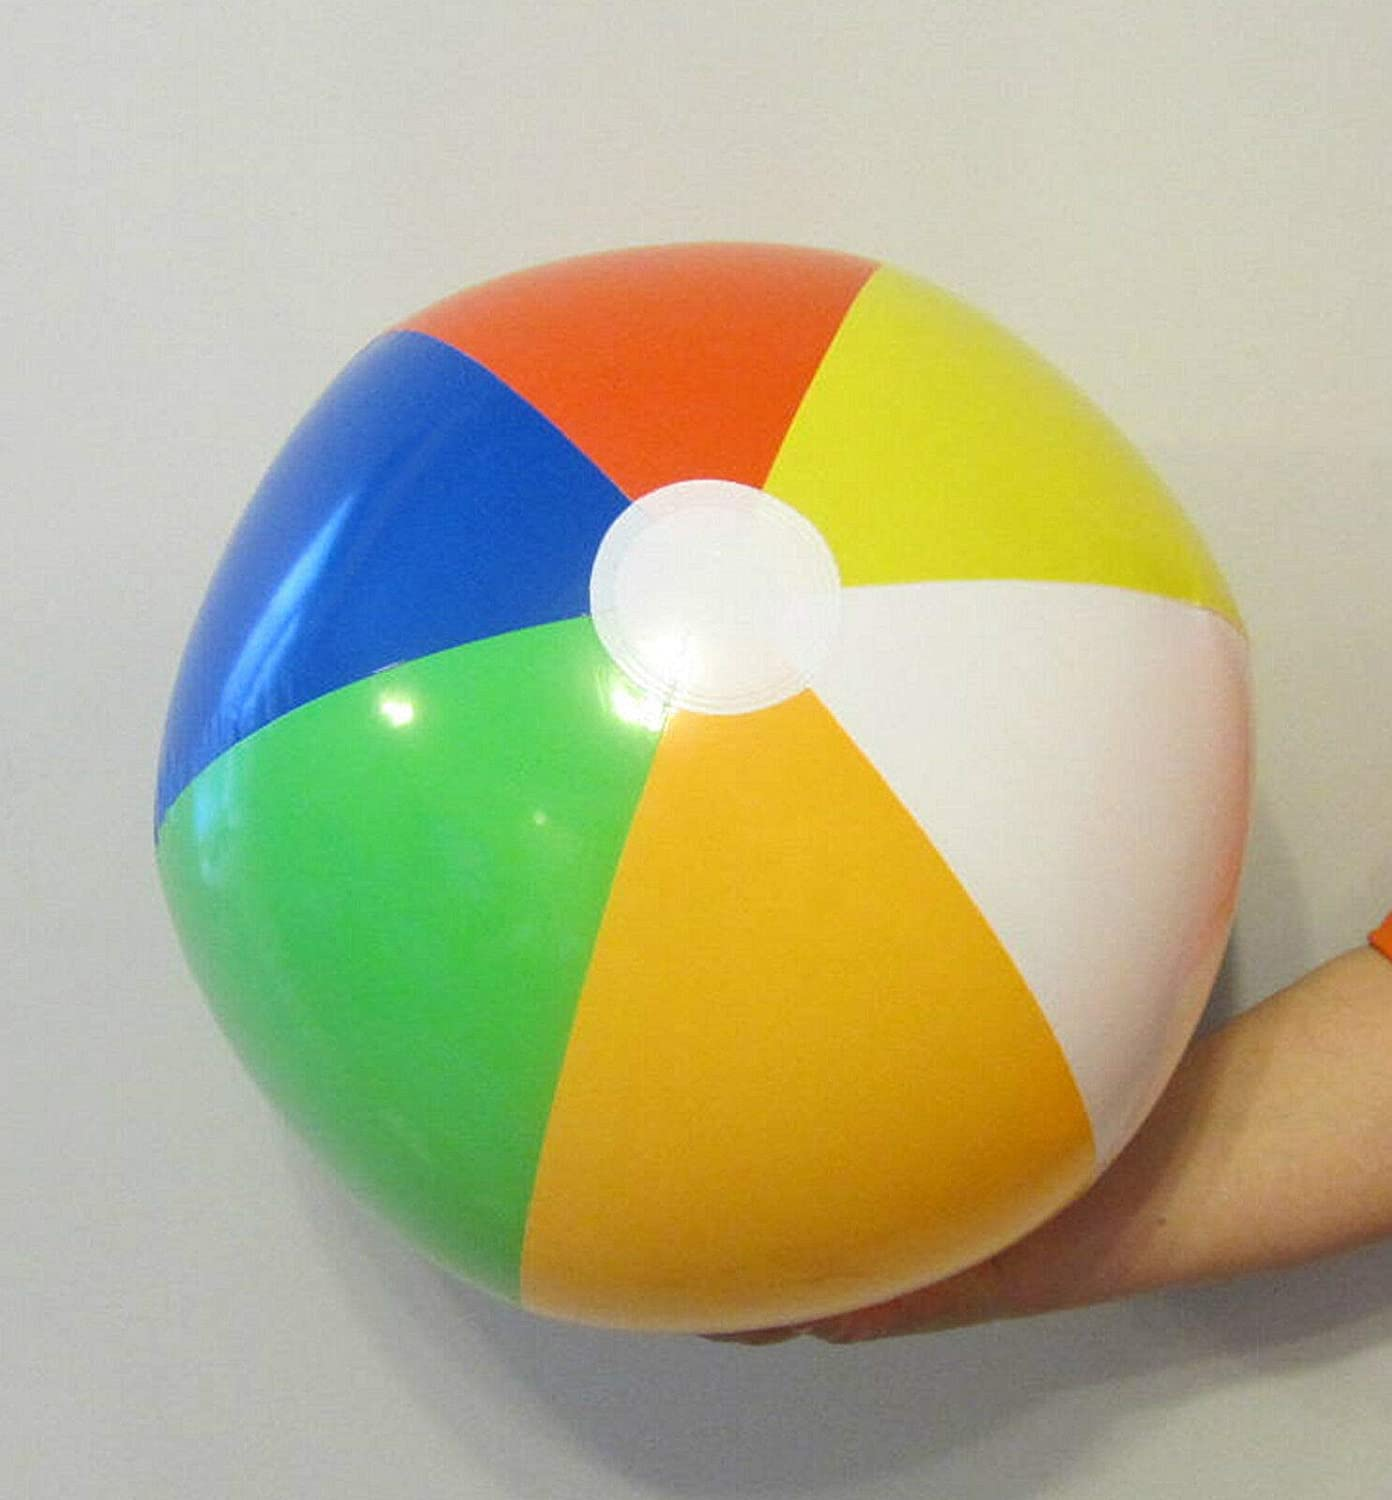 AirGarden - 7 Max 40% OFF New Directly managed store Large Inflatable Balls 22